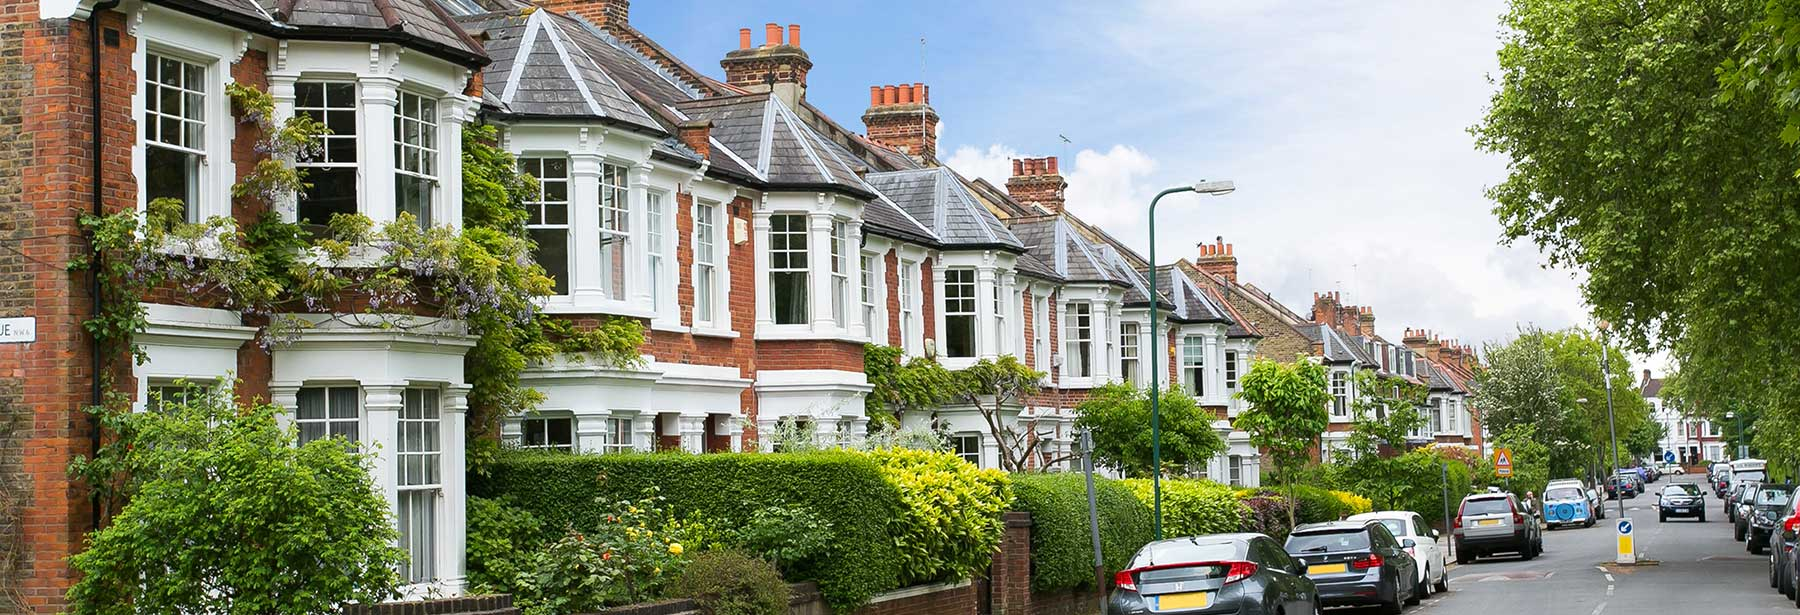 selling houses in Southampton with Knights Porter